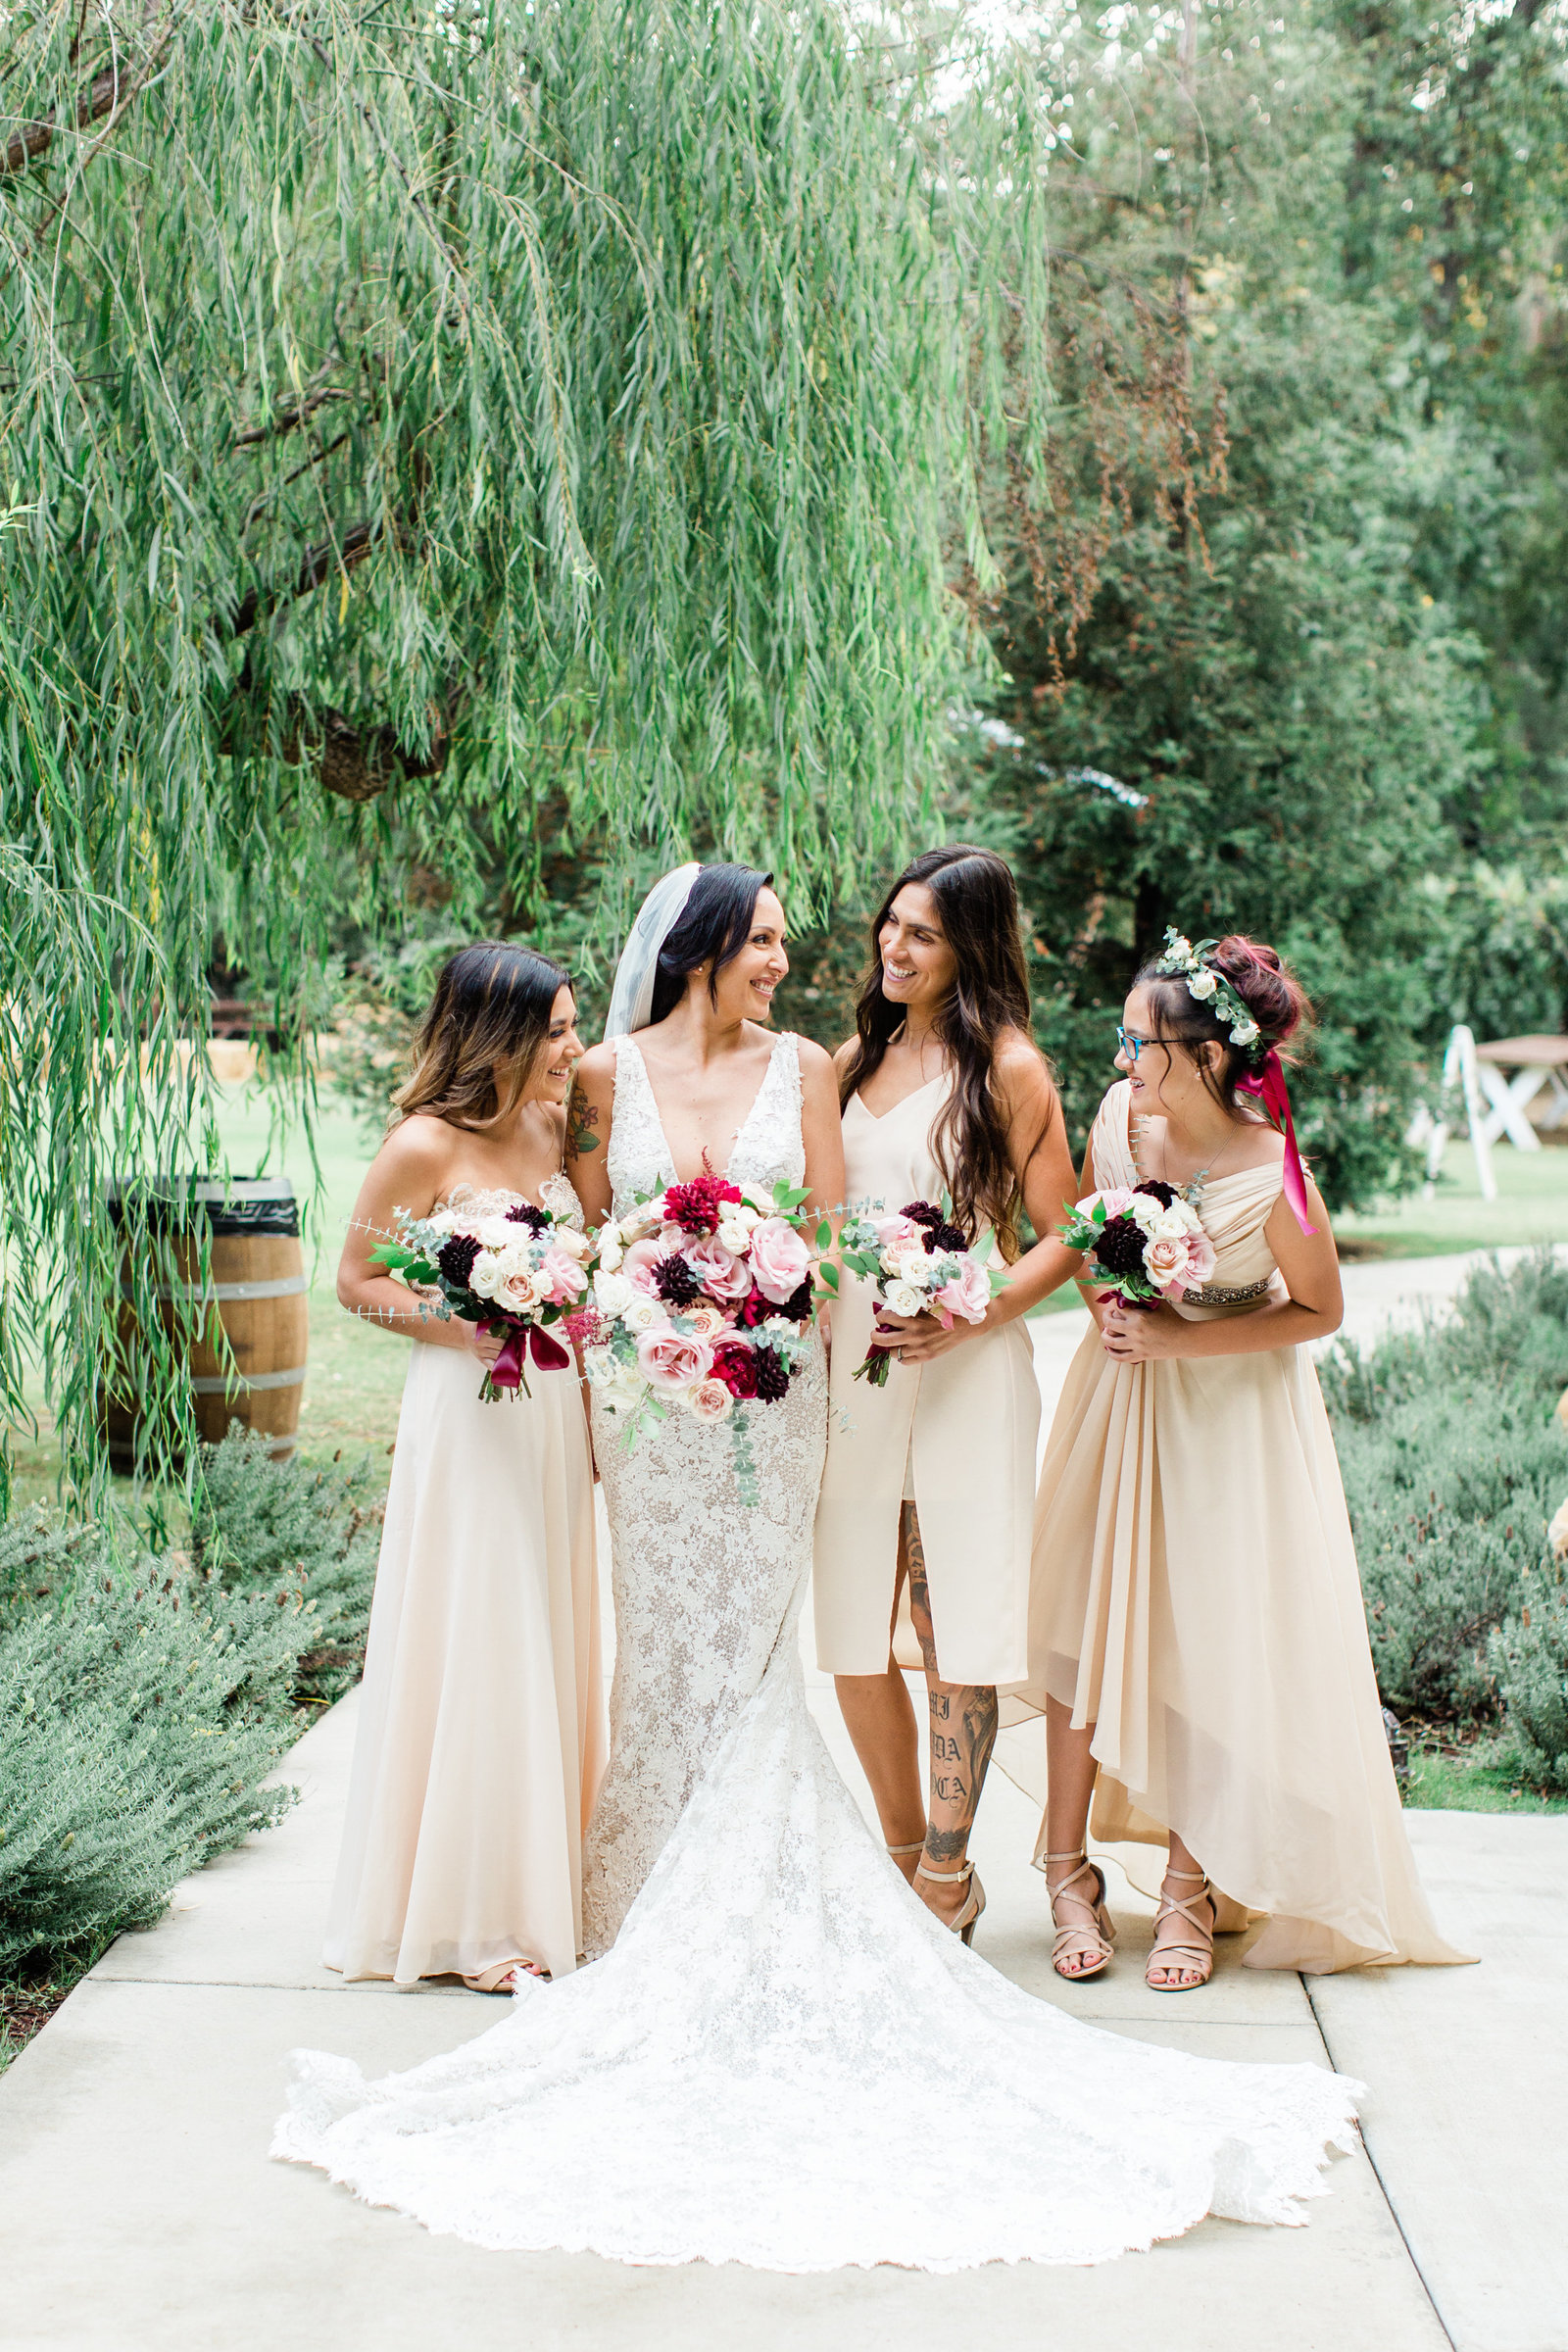 Calamigos-Ranch-Wedding-Bride-Bridesmaids